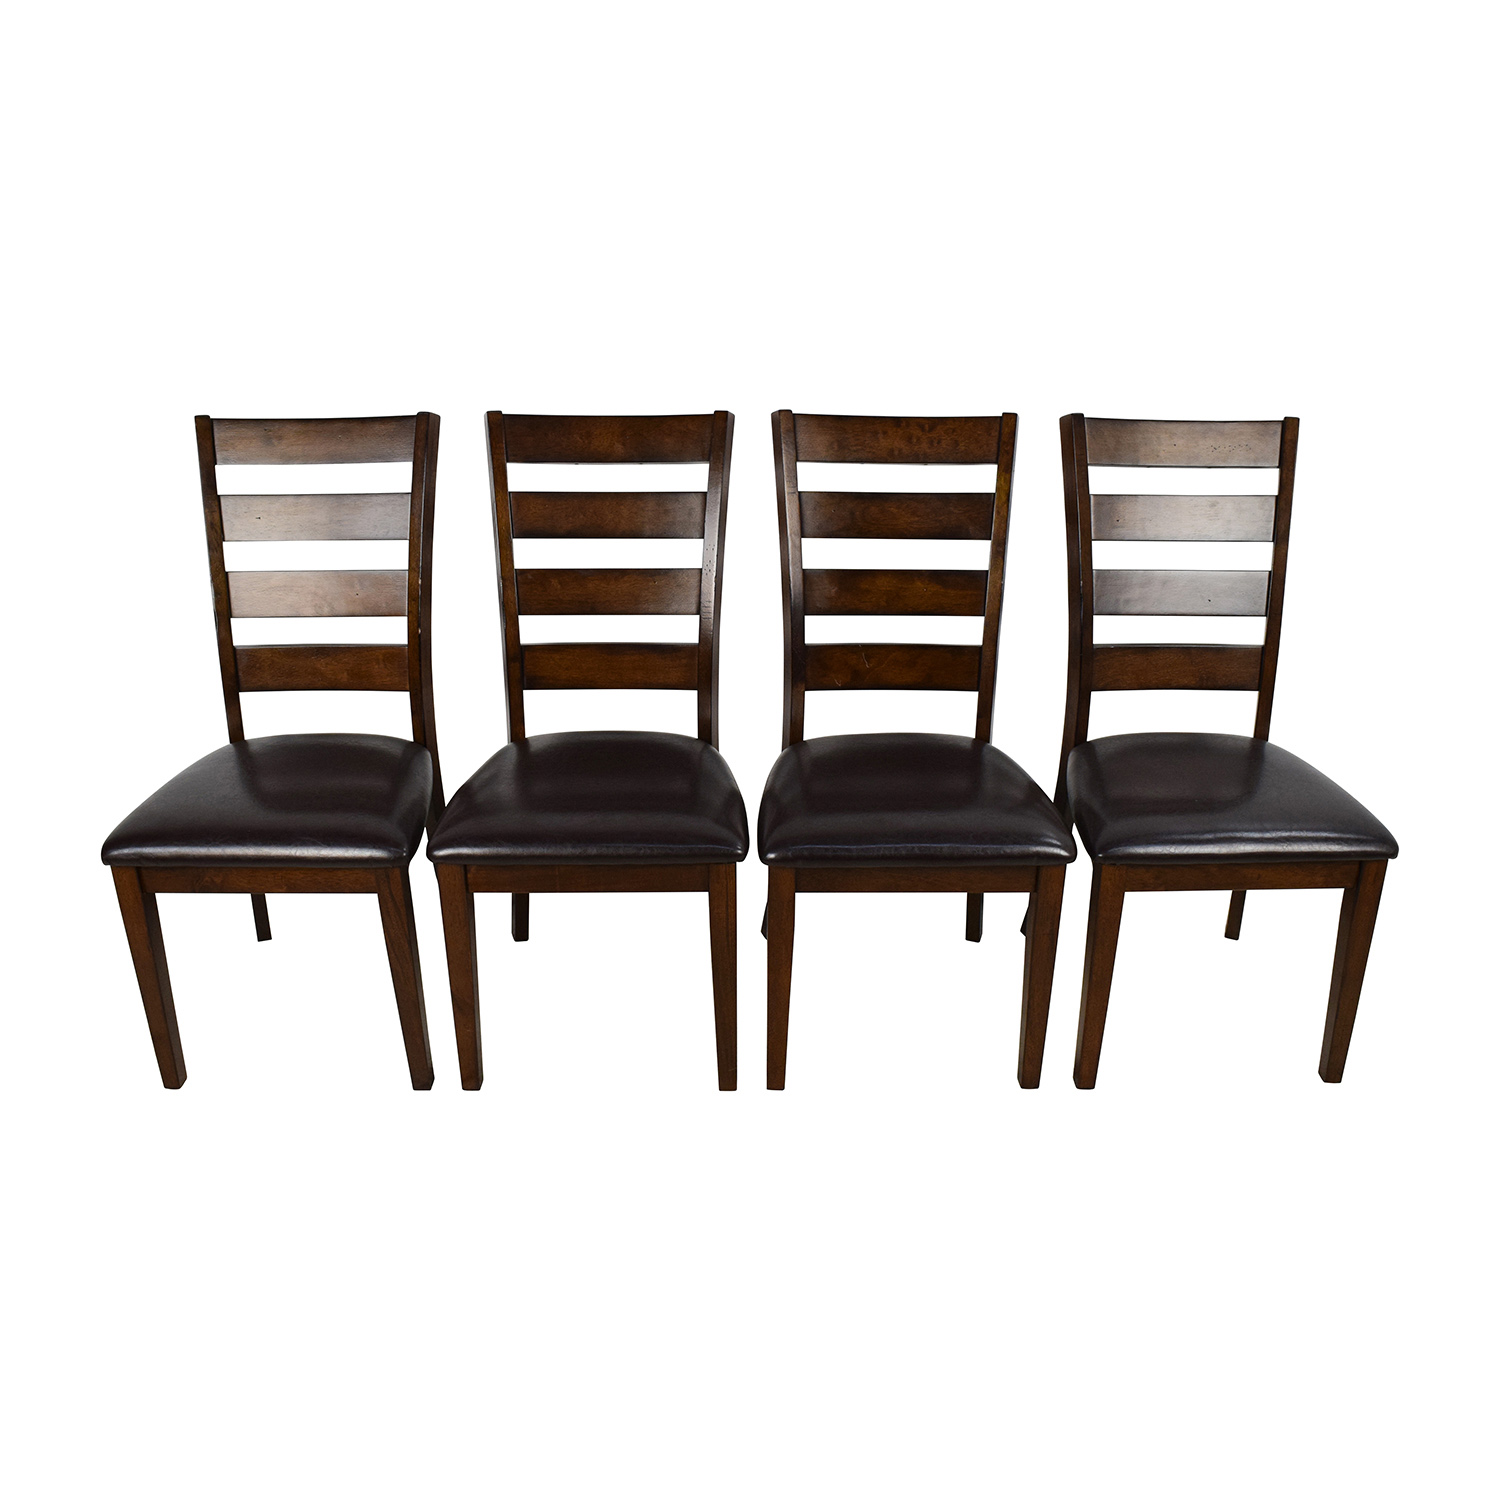 Raymour Flanigan Raymour & Flanigan Kona Dining Chairs Dark Brown